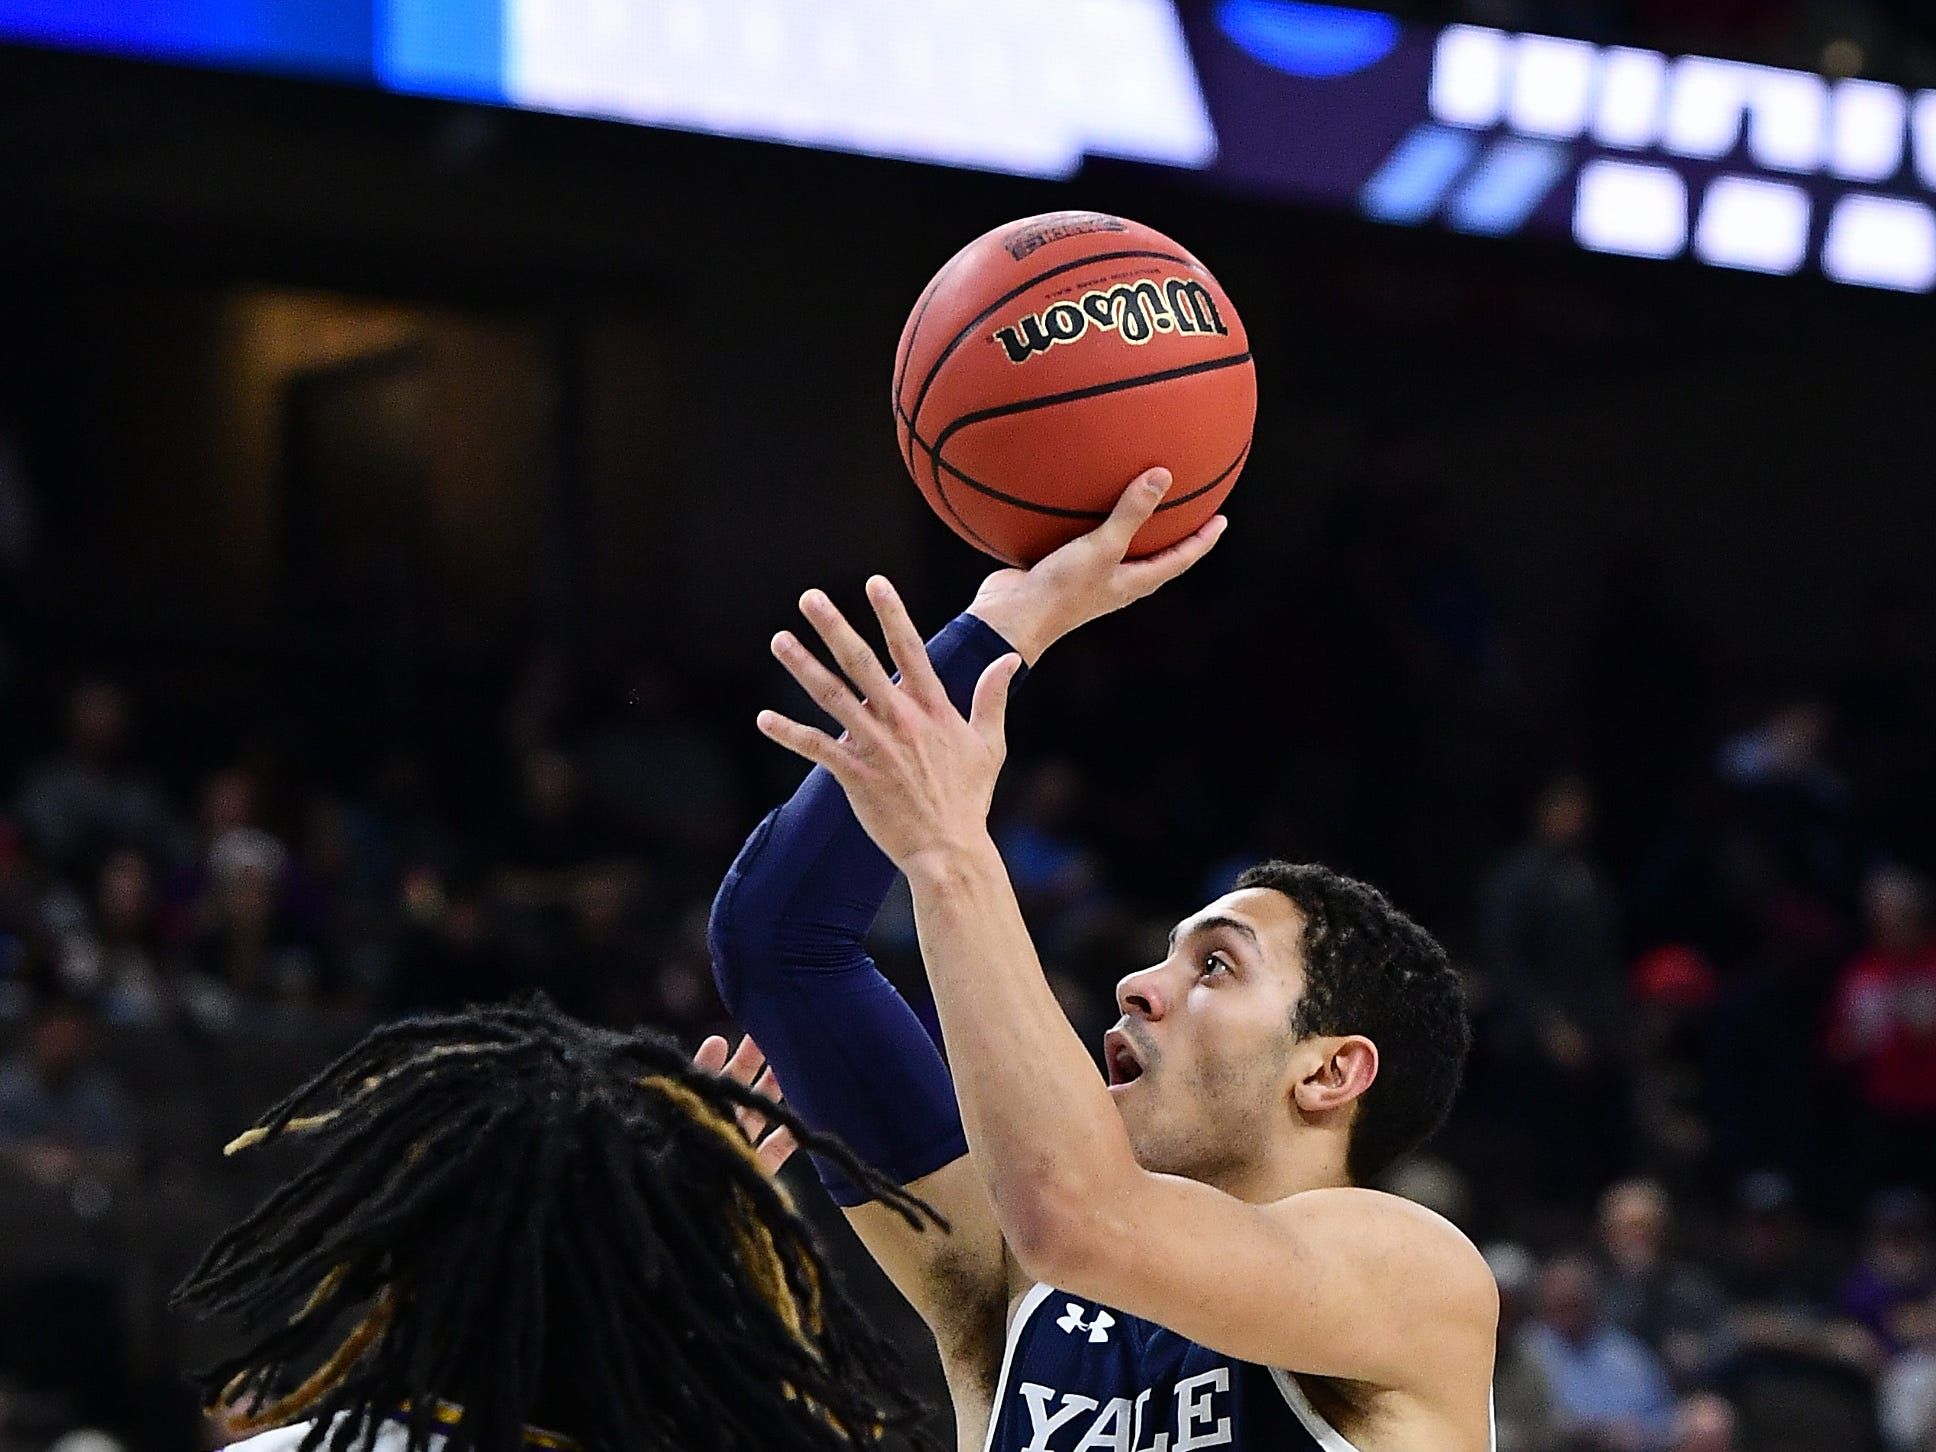 Mar 21, 2019; Jacksonville, FL, USA; Yale Bulldogs guard Alex Copeland (3) shoots against LSU Tigers forward Naz Reid (0) during the first half in the first round of the 2019 NCAA Tournament at Jacksonville Veterans Memorial Arena. Mandatory Credit: John David Mercer-USA TODAY Sports